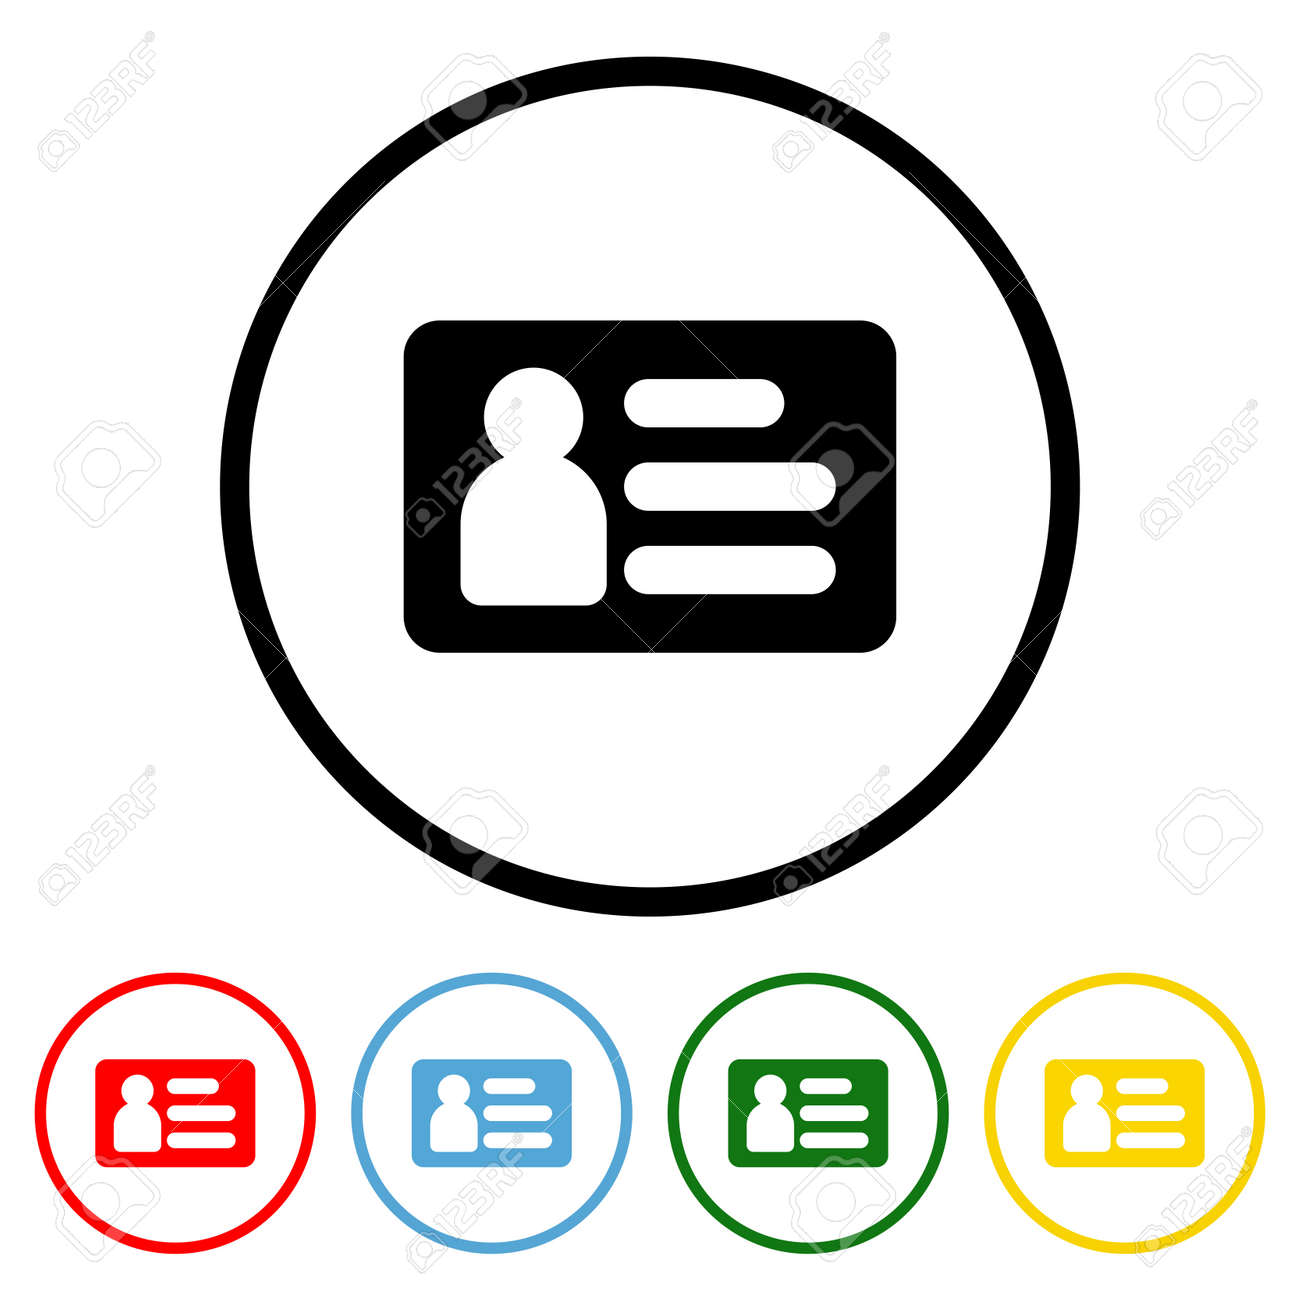 ID Card icon vector illustration design element with four color variations. Vector illustration. All in a single layer. Elements for design. ID Card Icon flat design. - 172254551